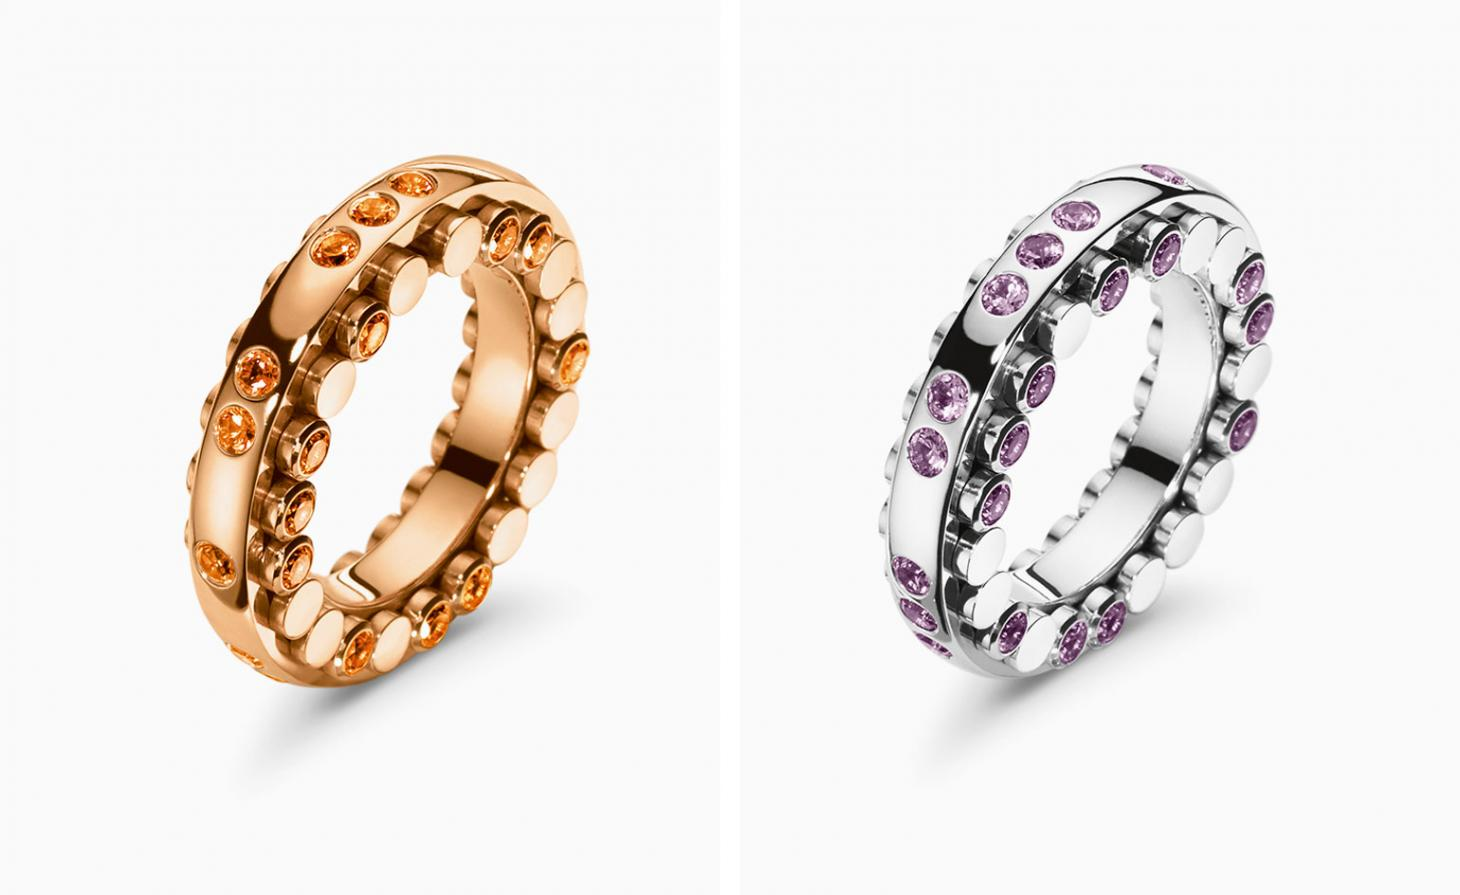 Bucherer rings